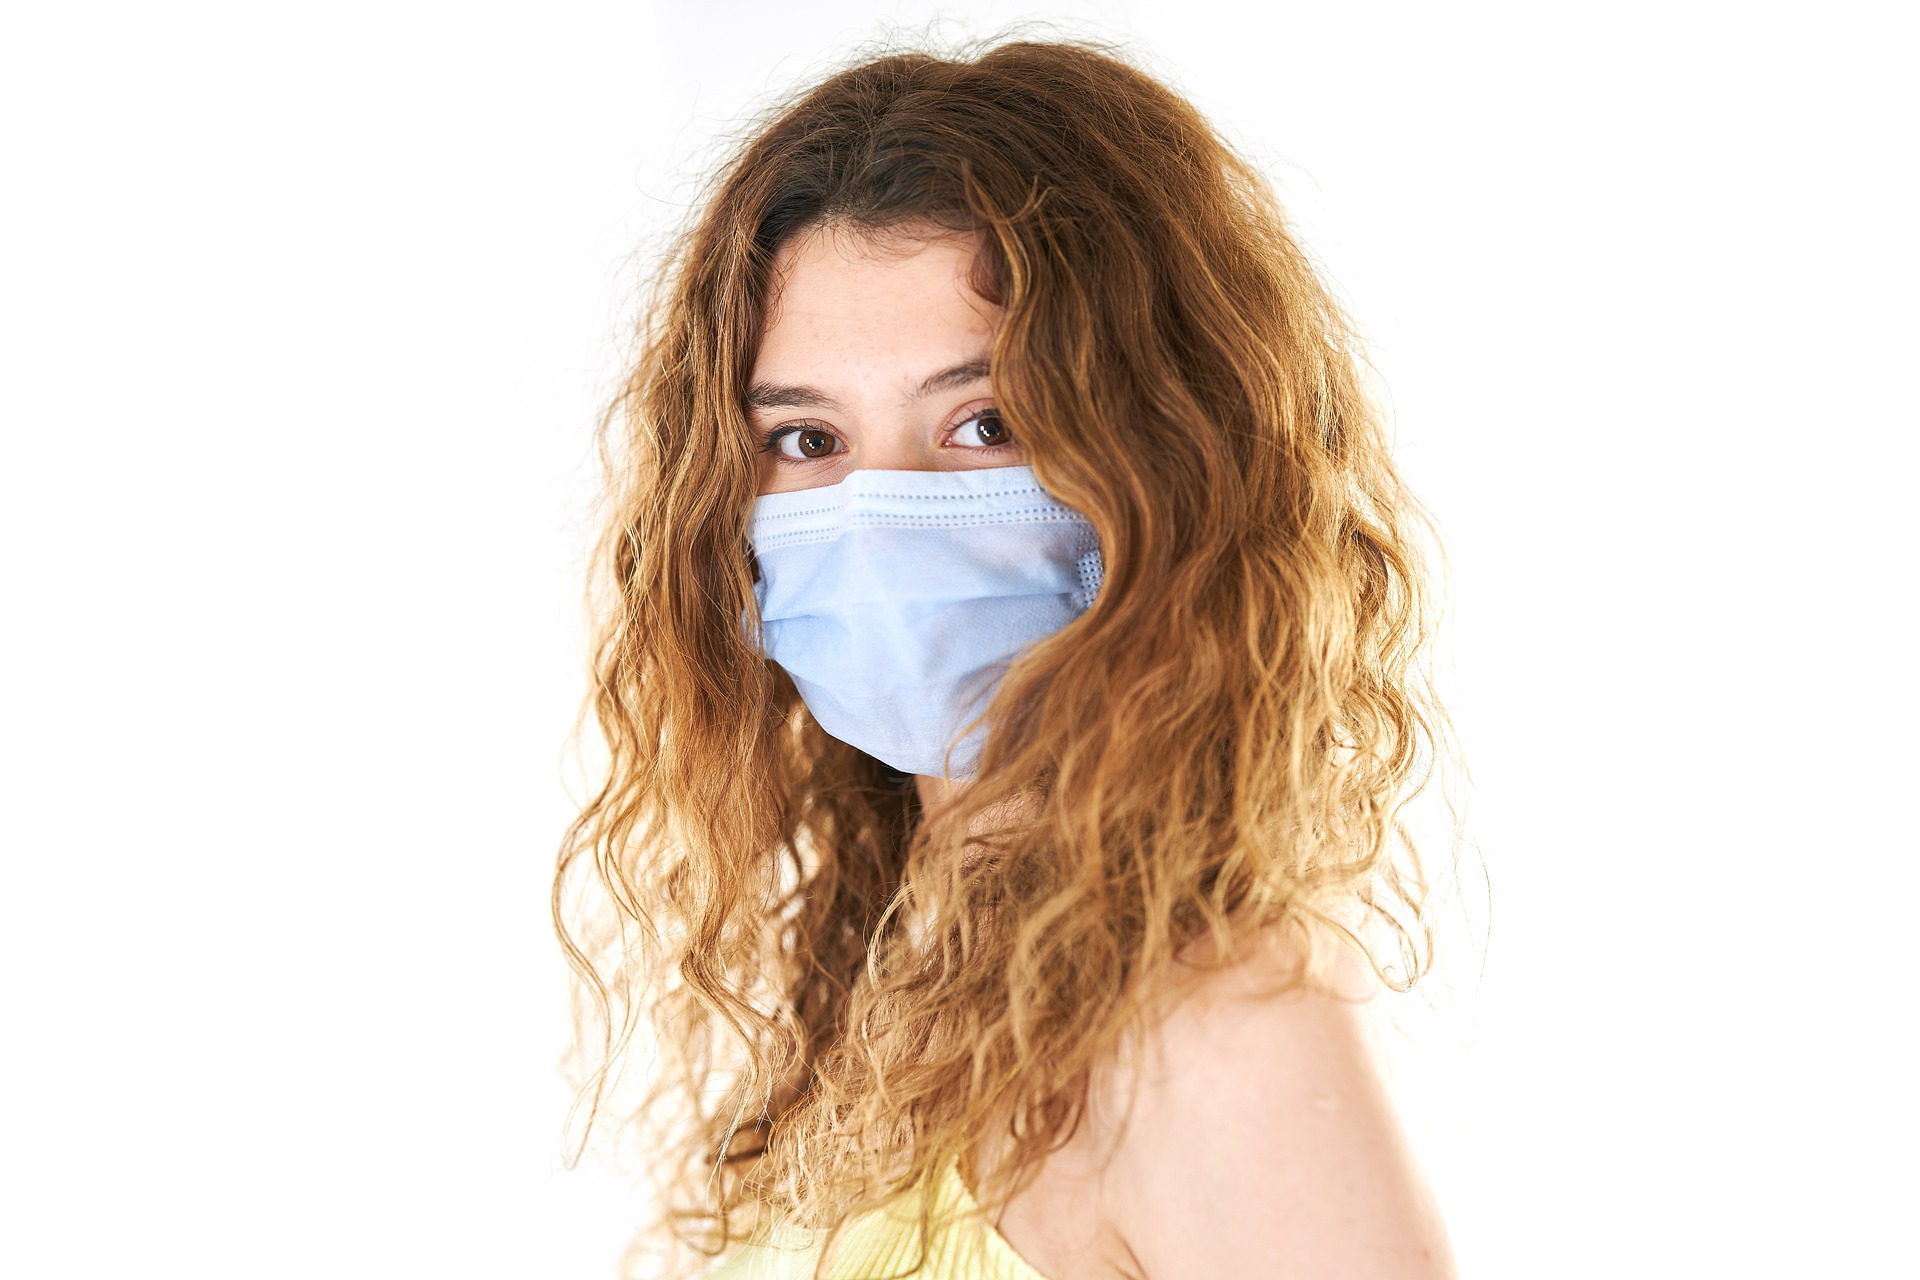 Stylists with Coronavirus Saw 139 Clients, None of Them Fell Ill. Everyone Wore a Mask.